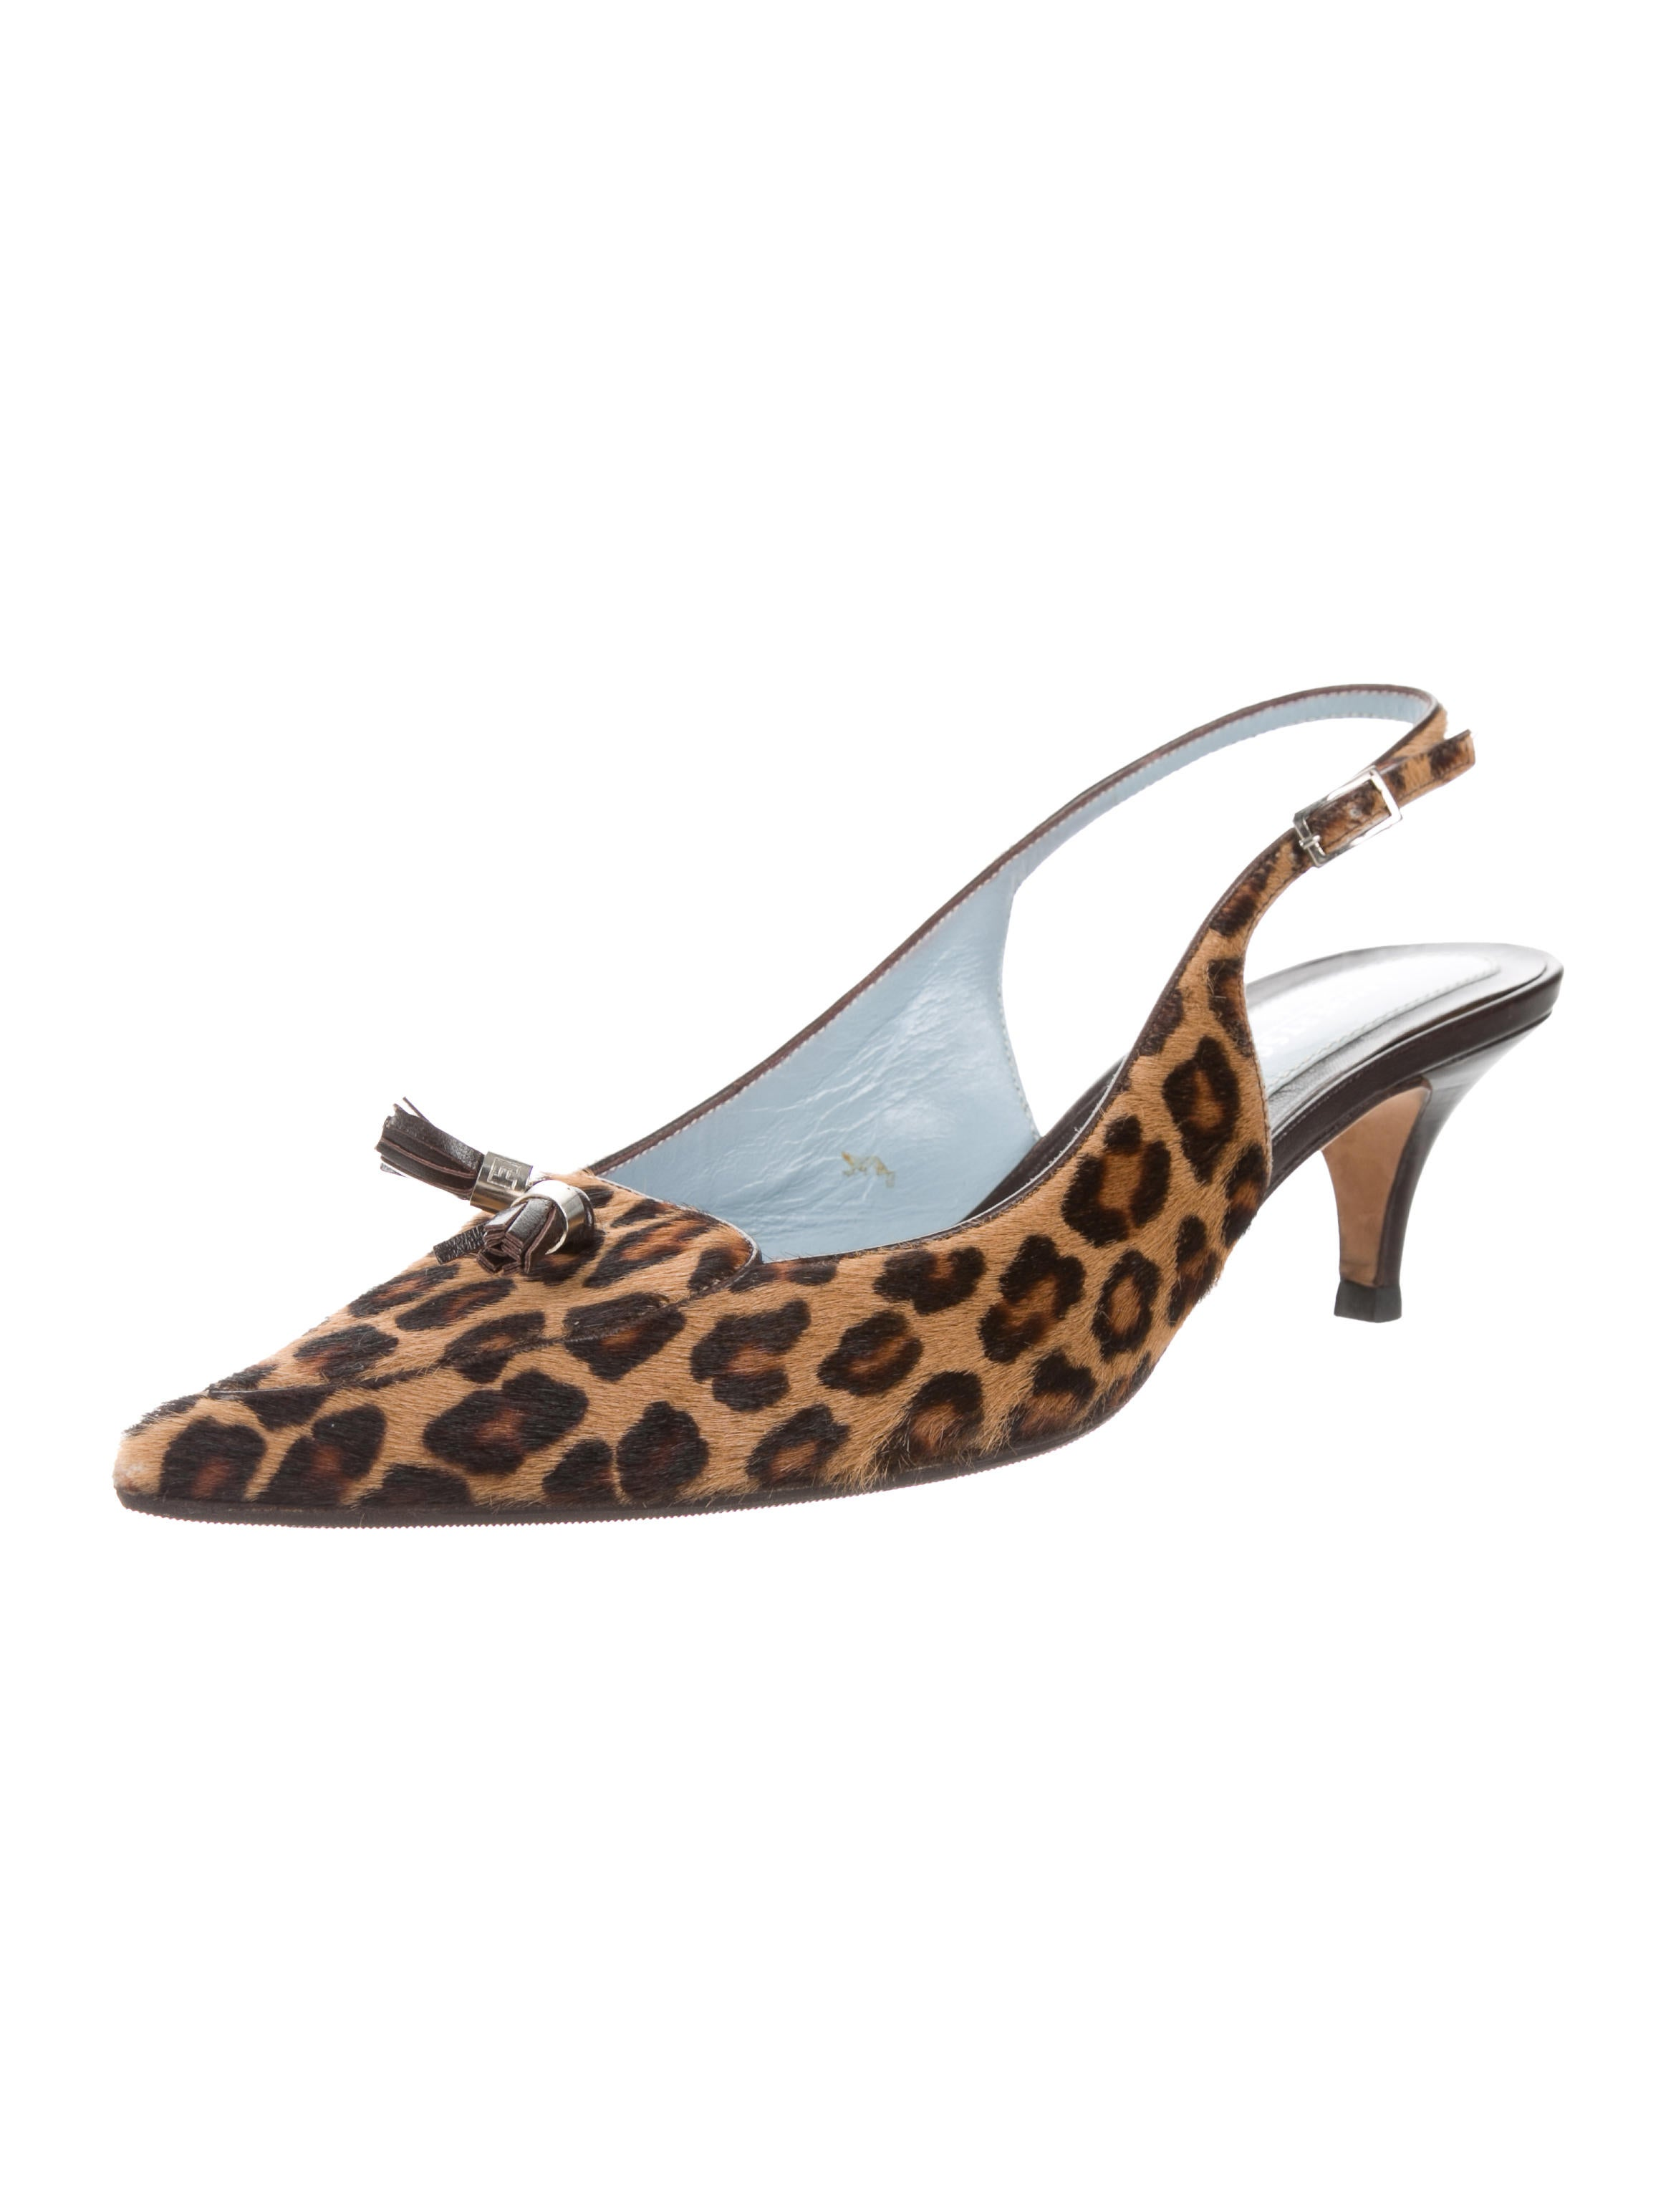 on hot sale Lambertson Truex Ponyhair Slingback Pumps 2014 new countdown package sale online buy cheap largest supplier i0YcU